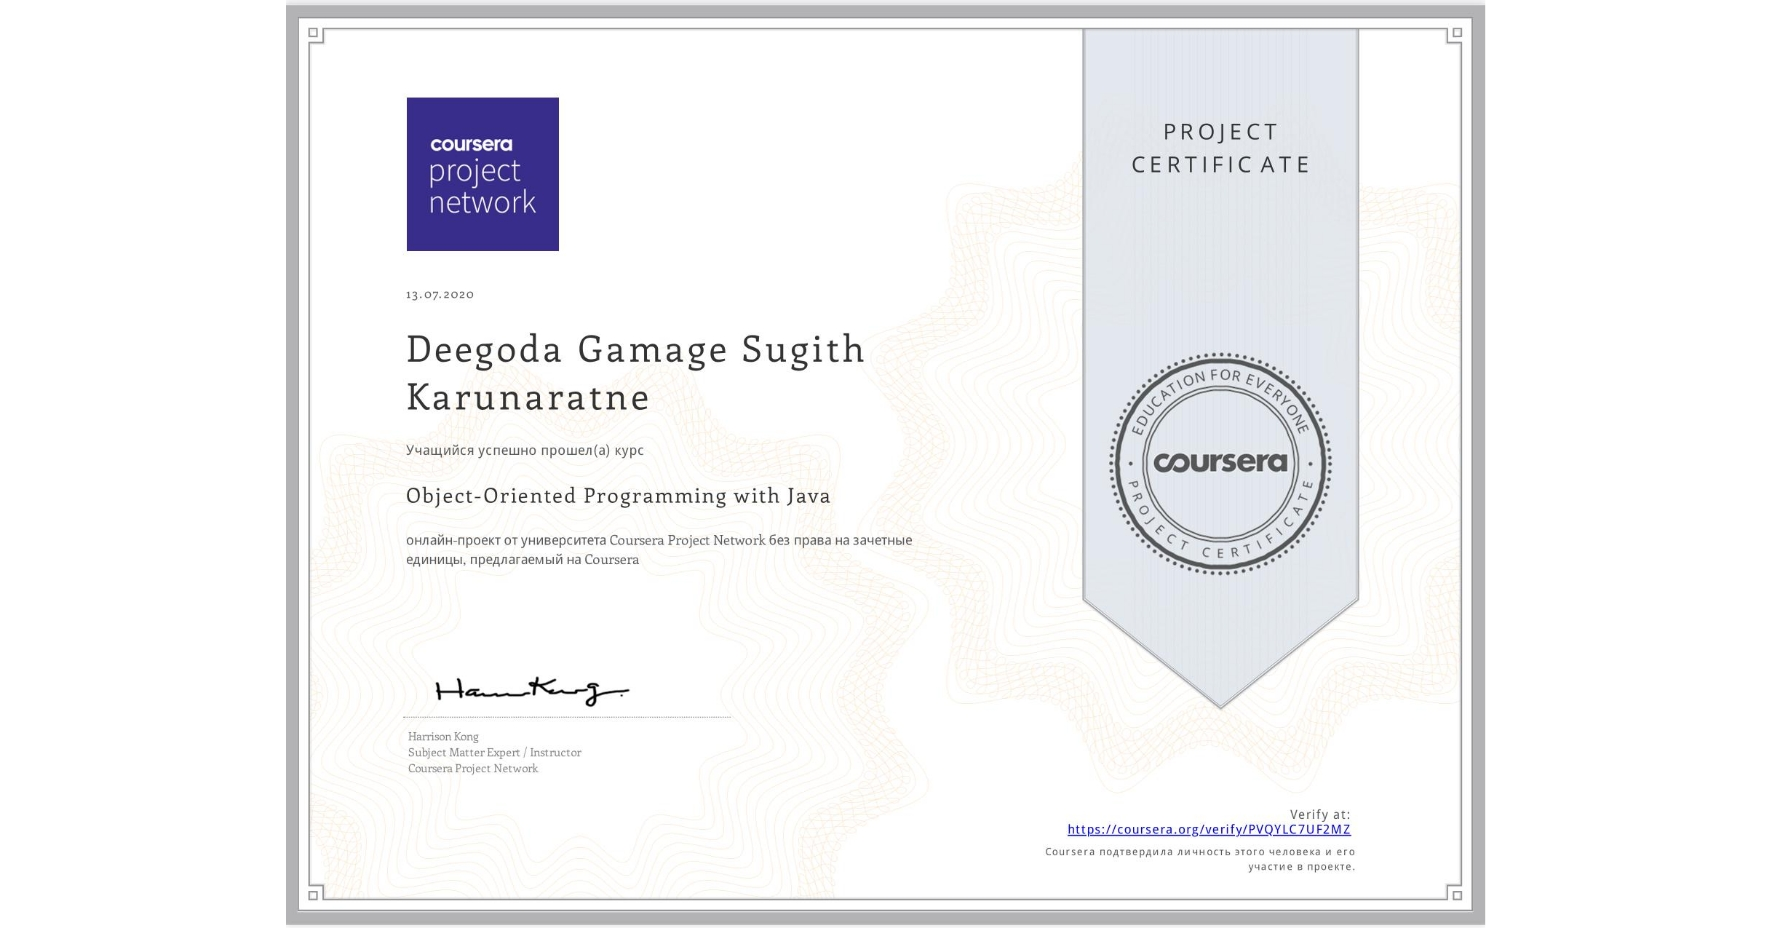 View certificate for Deegoda Gamage Sugith  Karunaratne, Object-Oriented Programming with Java, an online non-credit course authorized by Coursera Project Network and offered through Coursera